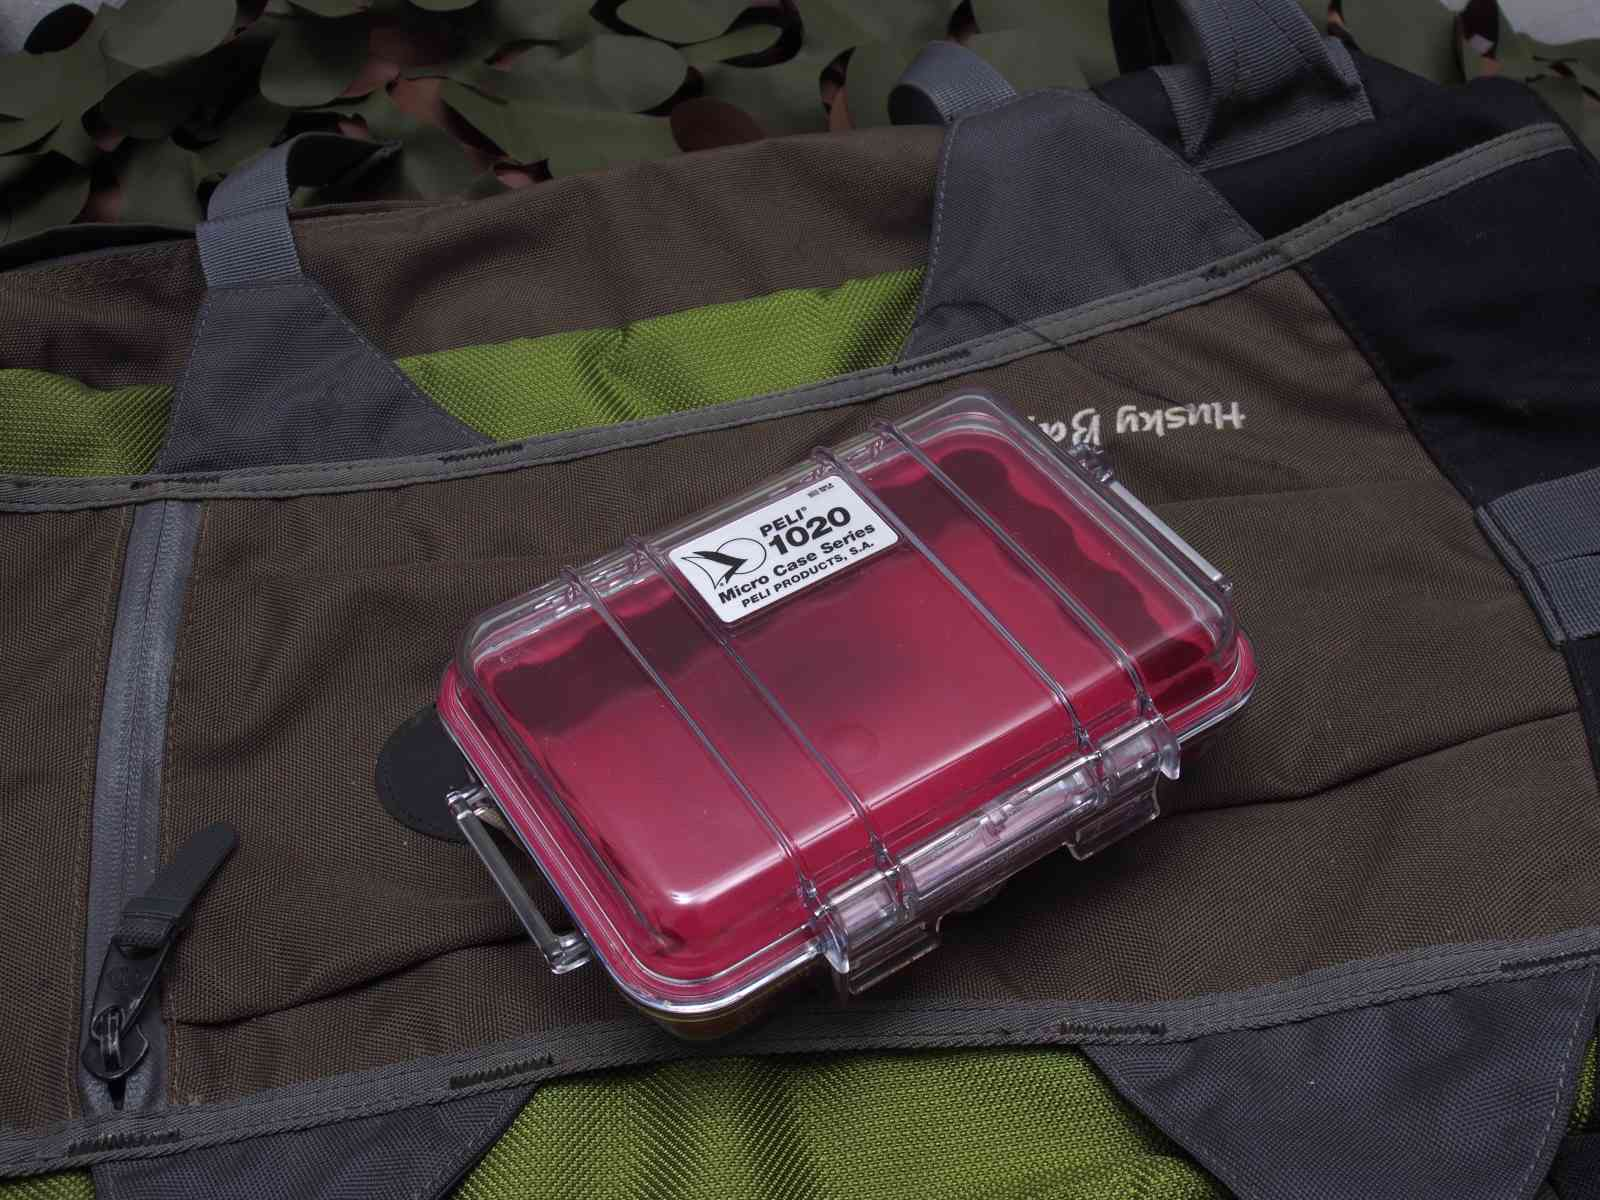 Mein Survival-Kit - Peli Box 1020